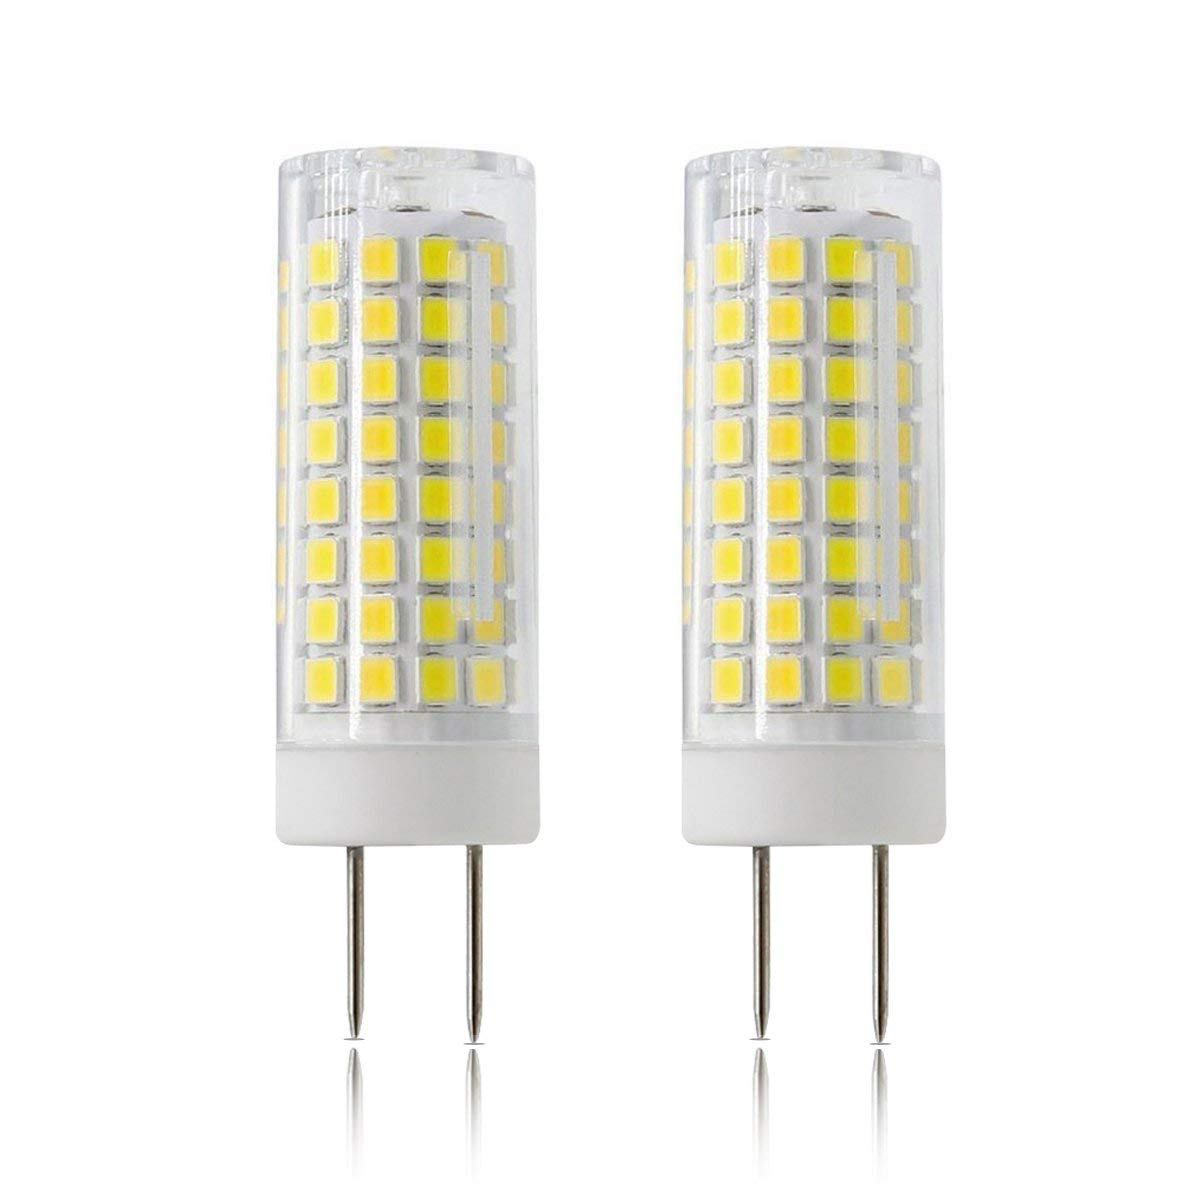 LED GY8.6 Bulb, All-New 7W T4 G8 LED Bulb, 75W Halogen Bulb Replacement, GY8.6 Bi-pin Base Light Bulb, AC120V, for Under Counter Kitchen Lighting, Light Fitting, 2-Pack (G8-White)